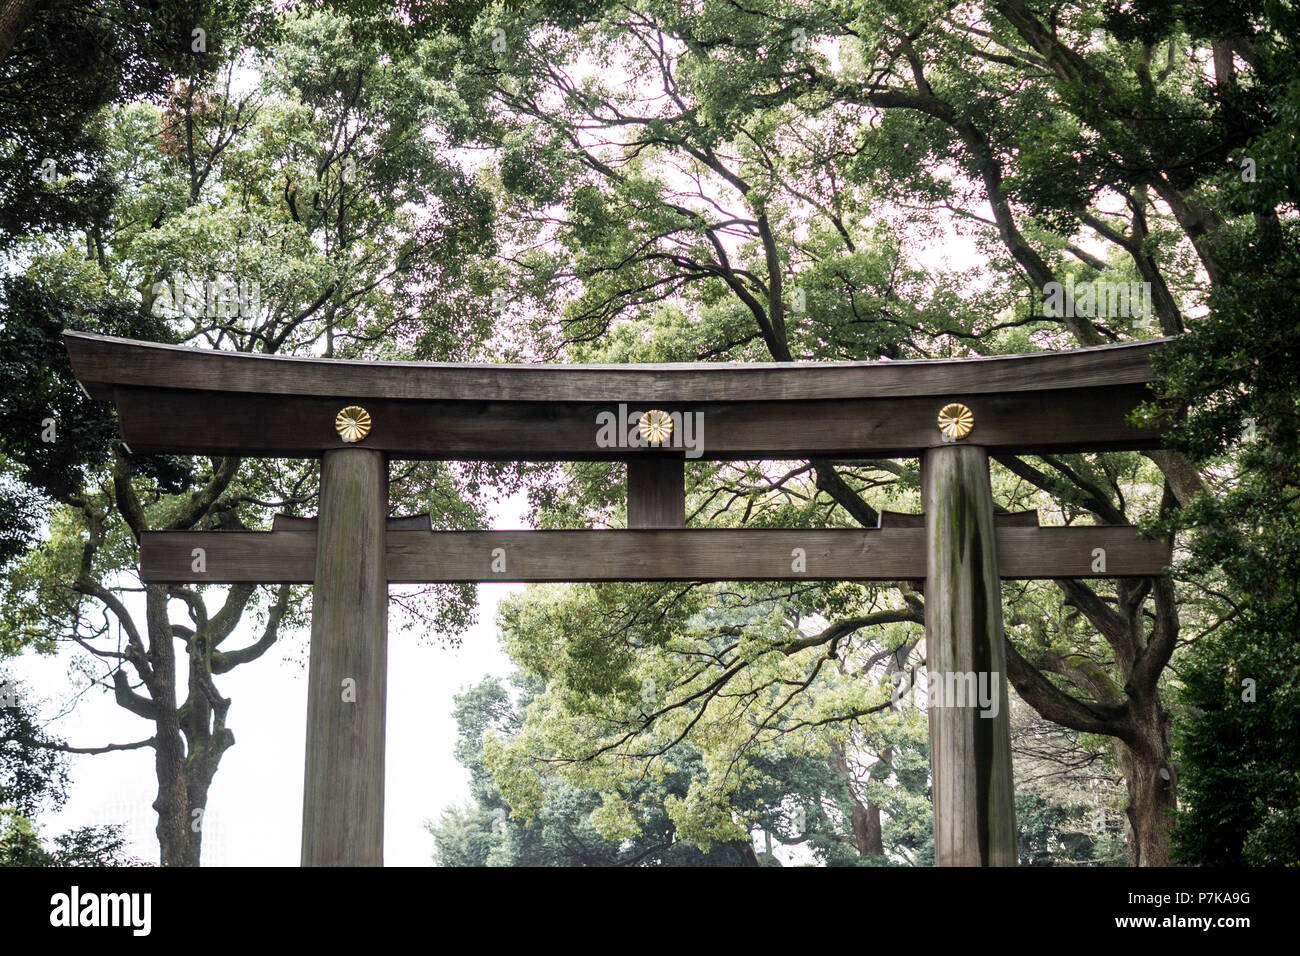 A gate to a parks entrance in Tokyo - Stock Image